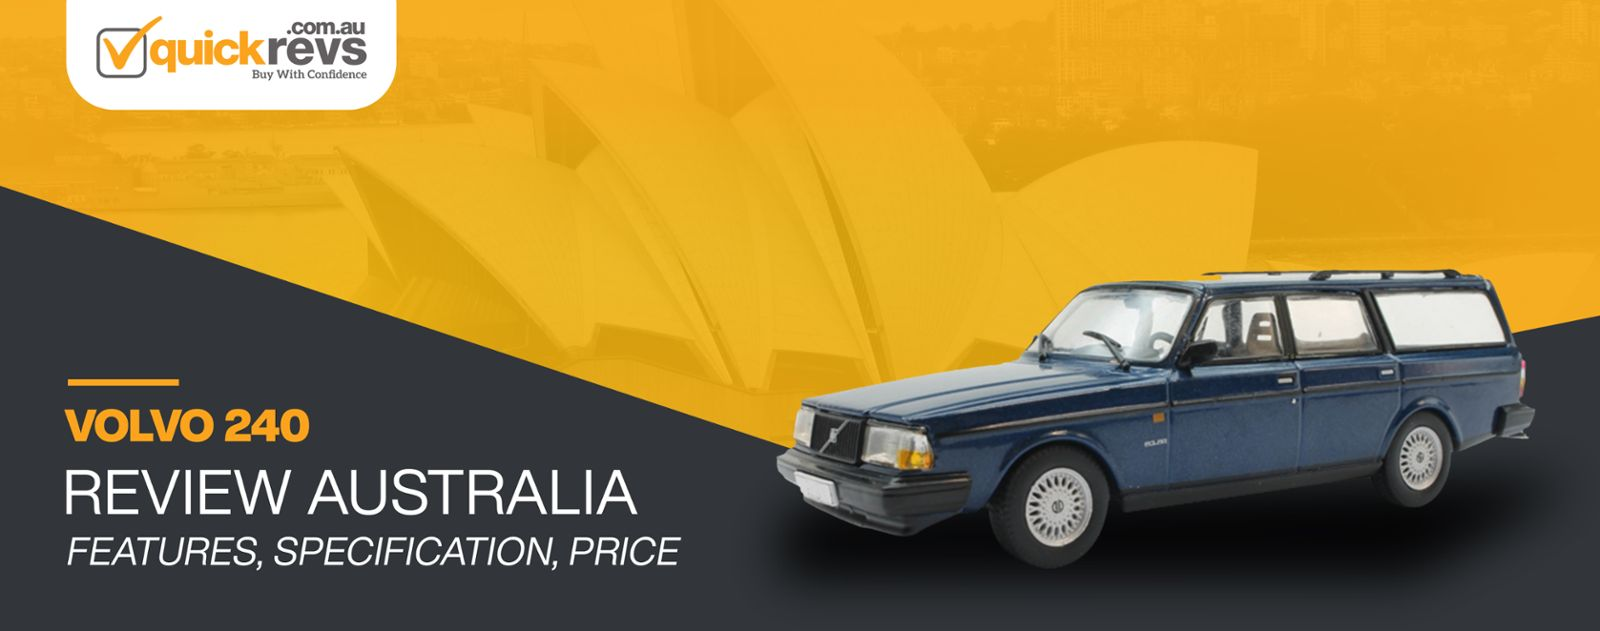 Volvo 240 Review Australia | Features, Specification, Price